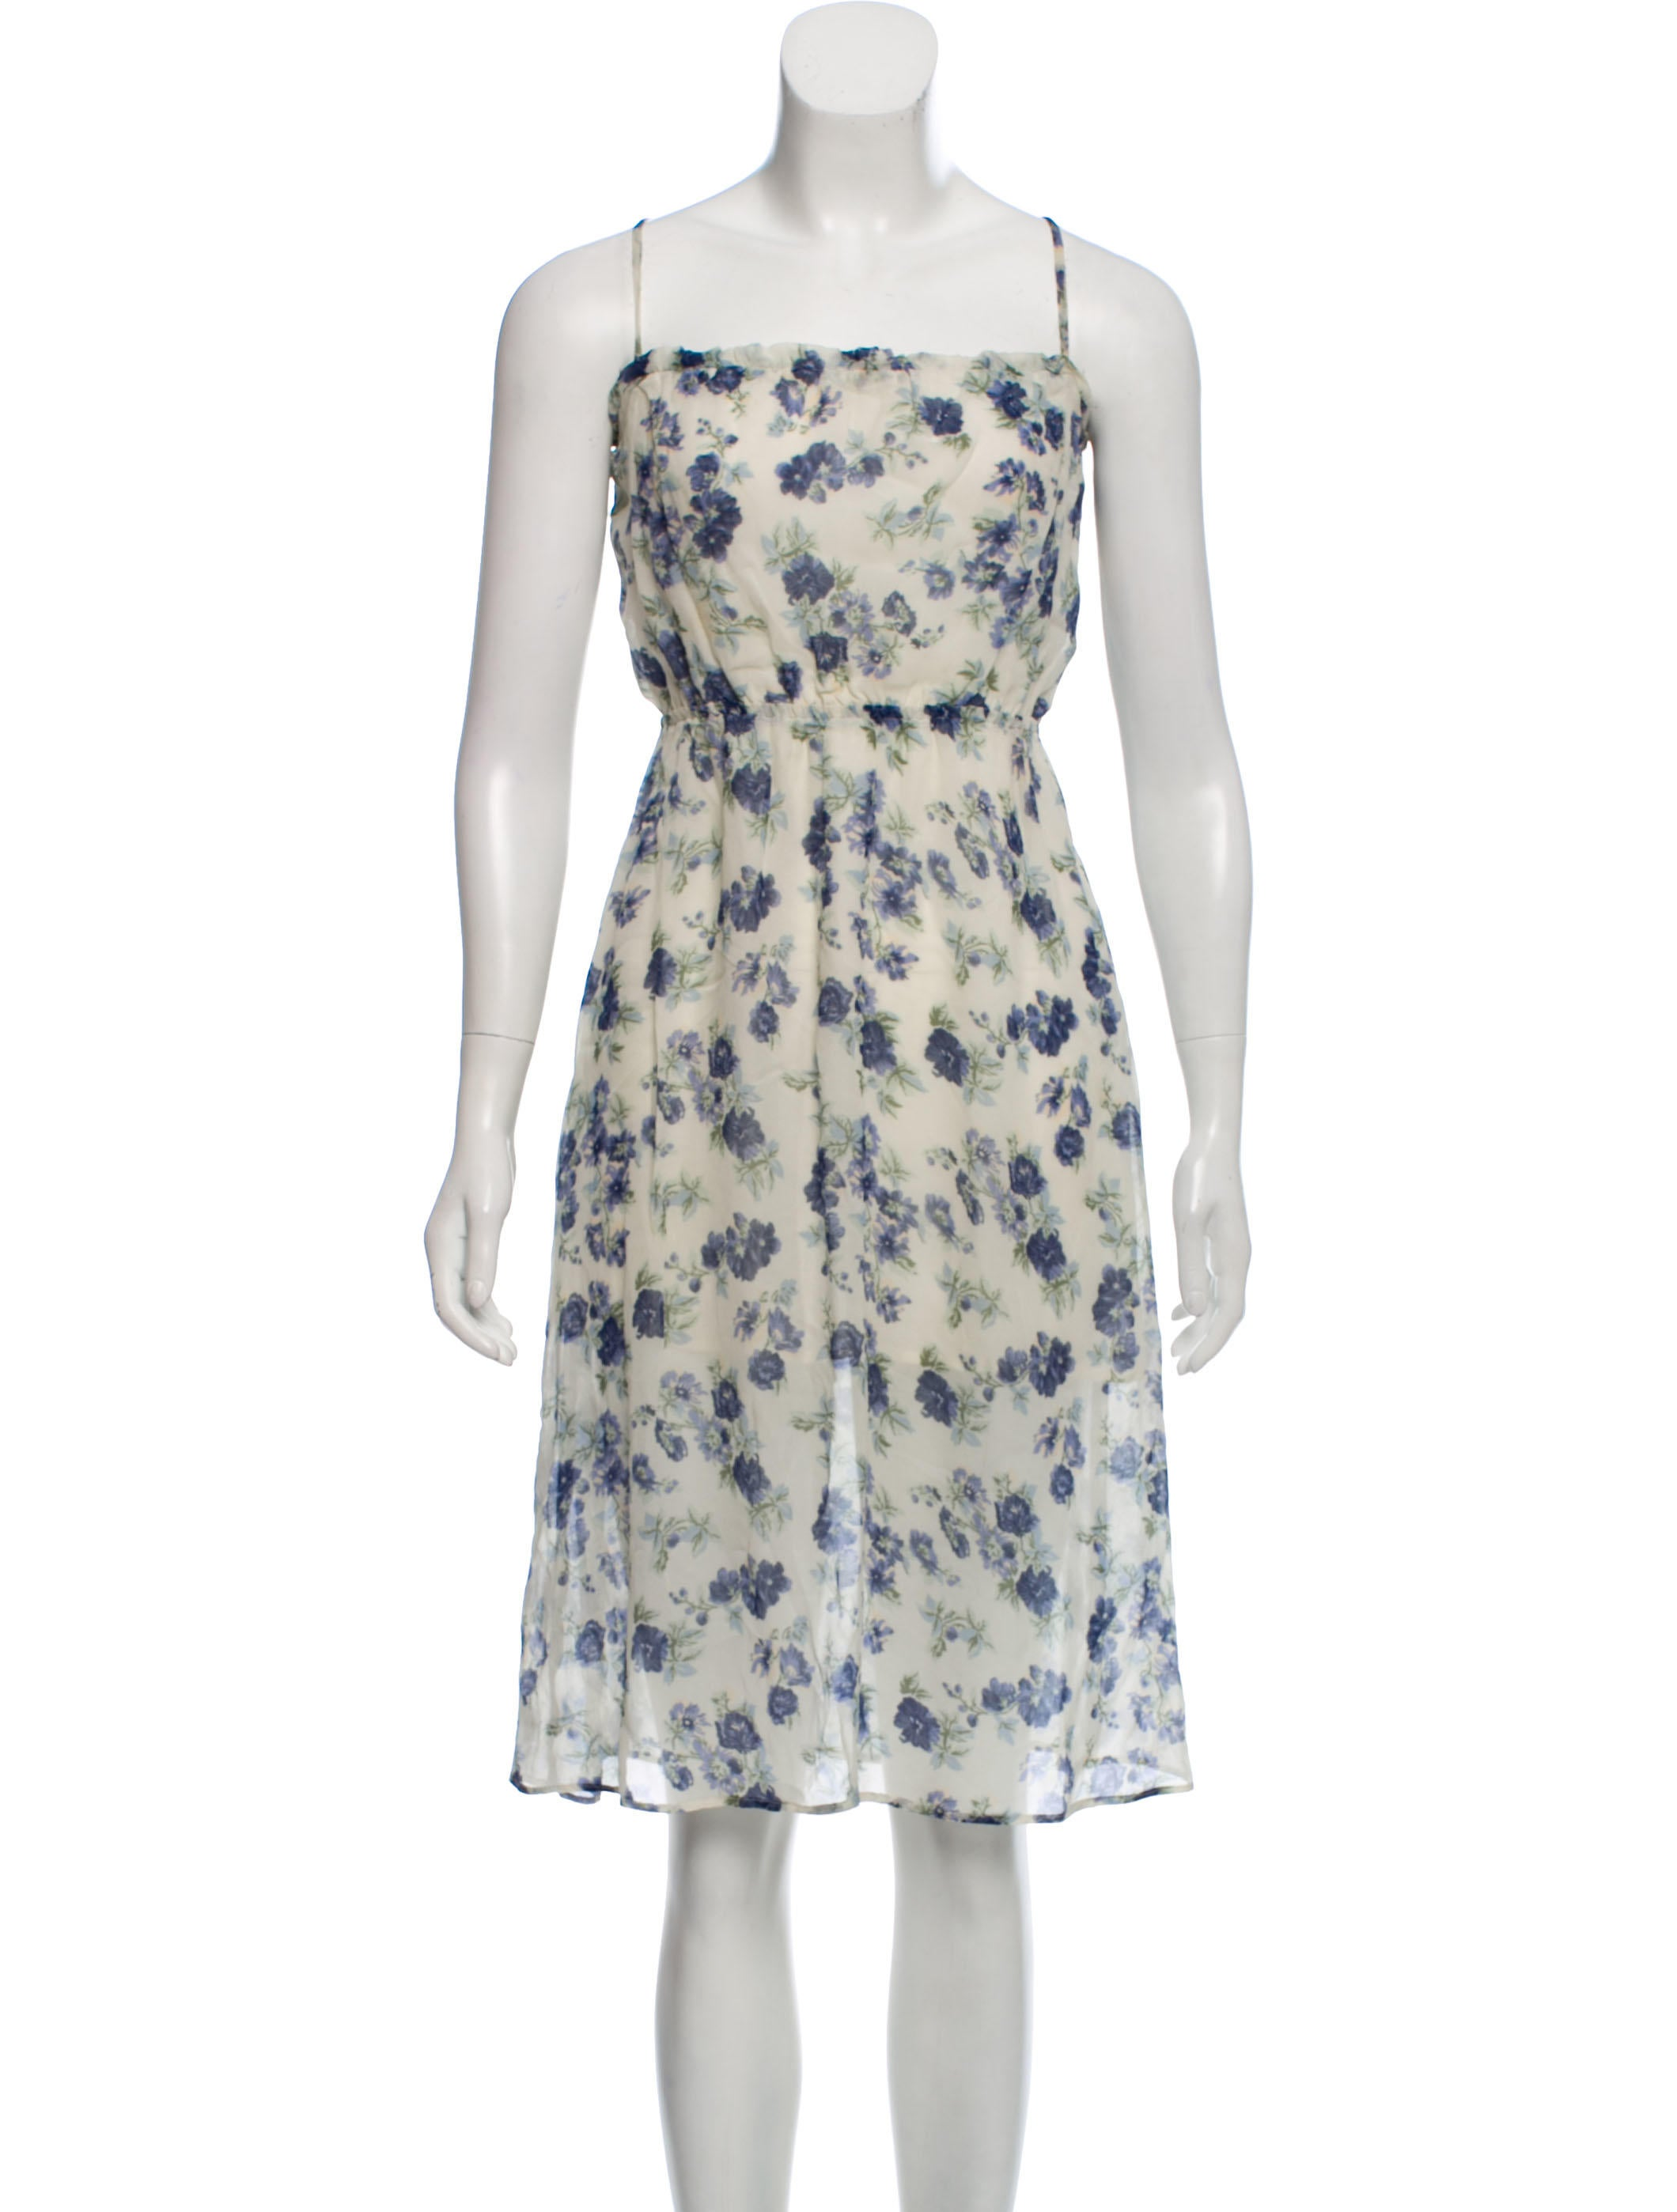 Reformation sleeveless floral dress clothing wrfmn24754 the sleeveless floral dress izmirmasajfo